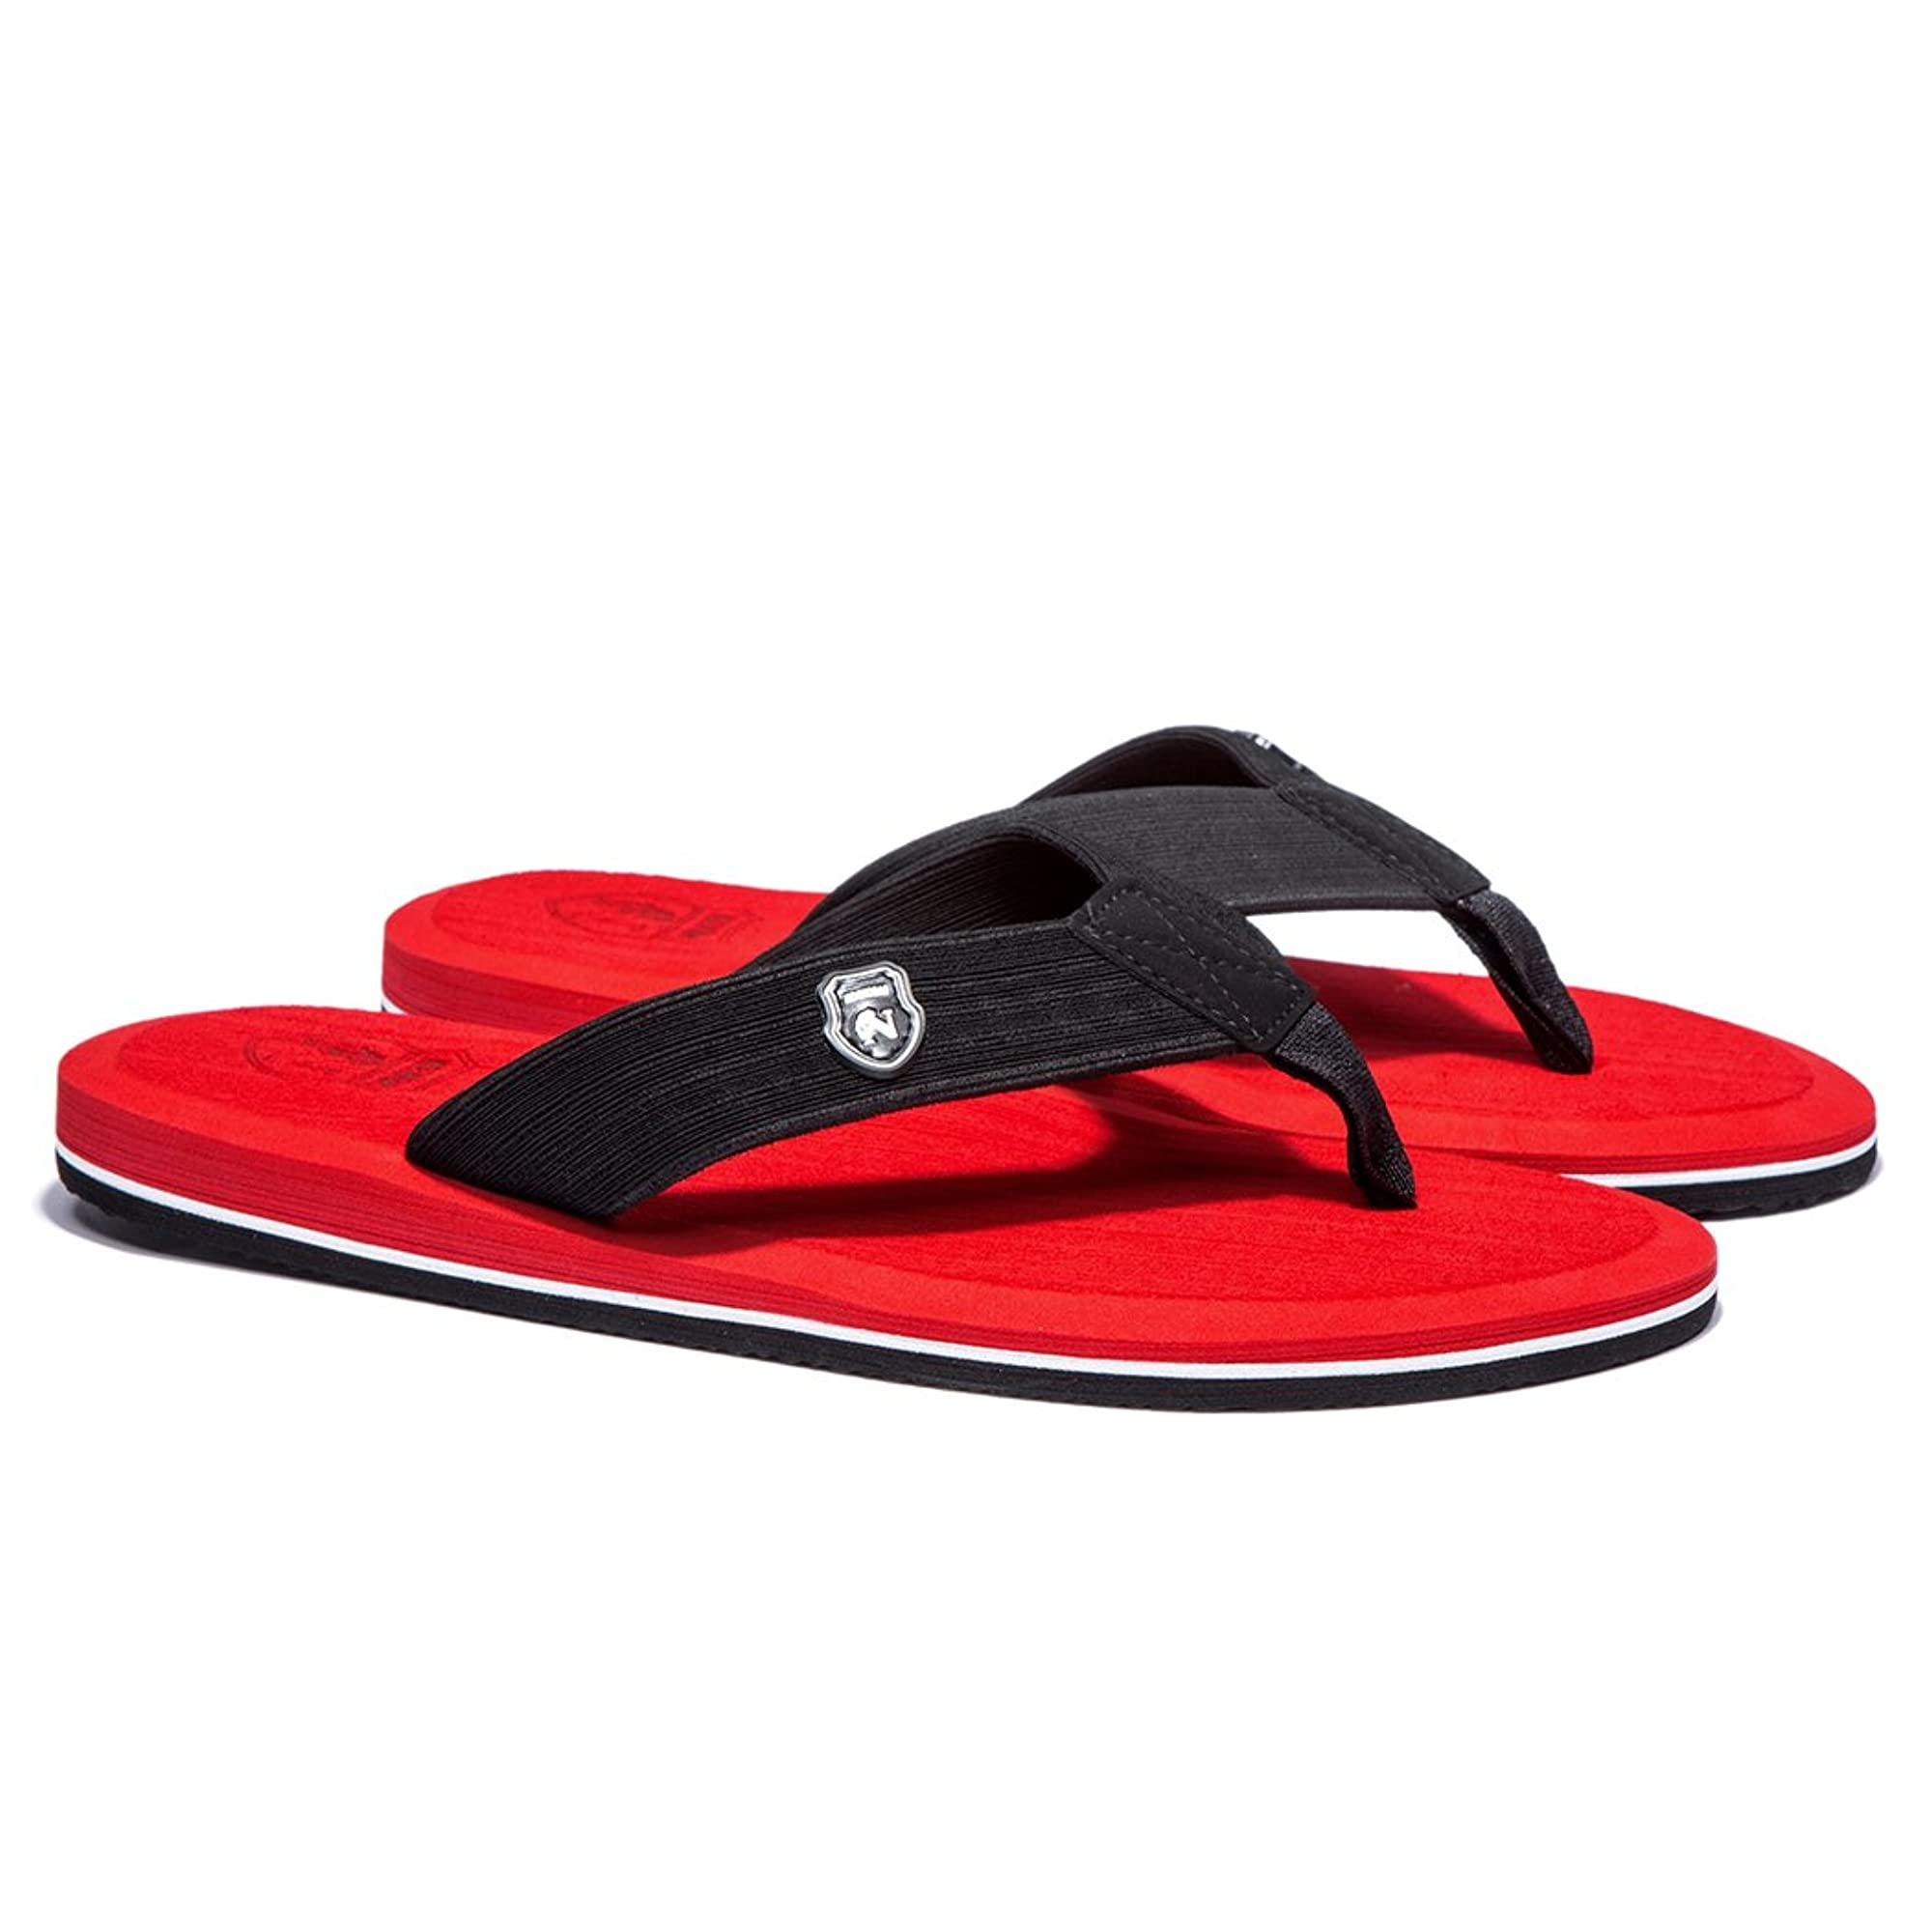 Comfortable Flip Flops For Men